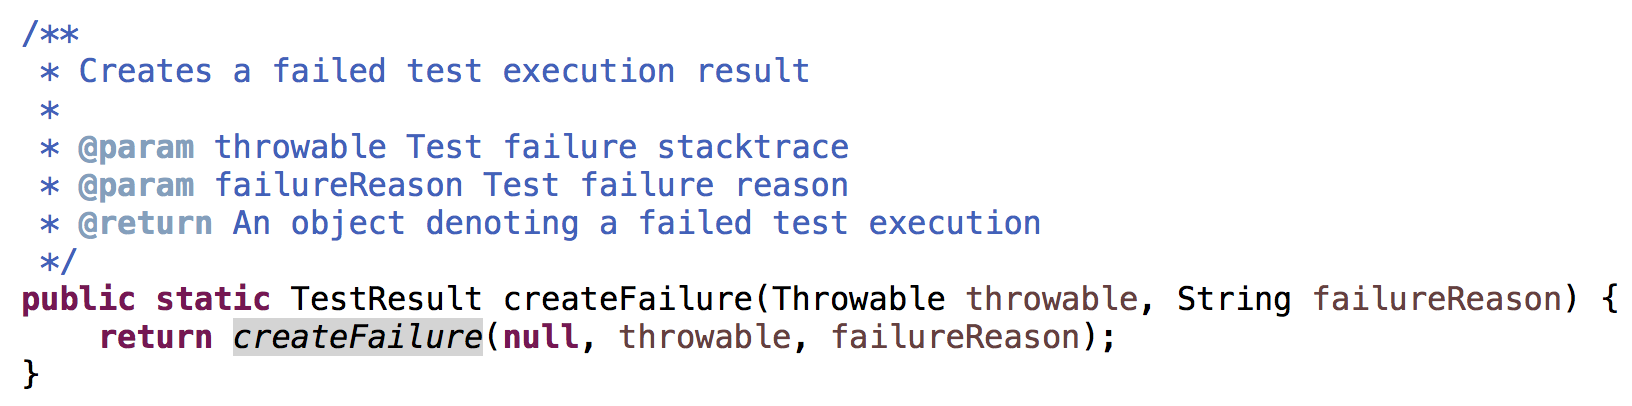 Adding failure reason in JUnit 5 - TIPS AND TRICKS - Documentation